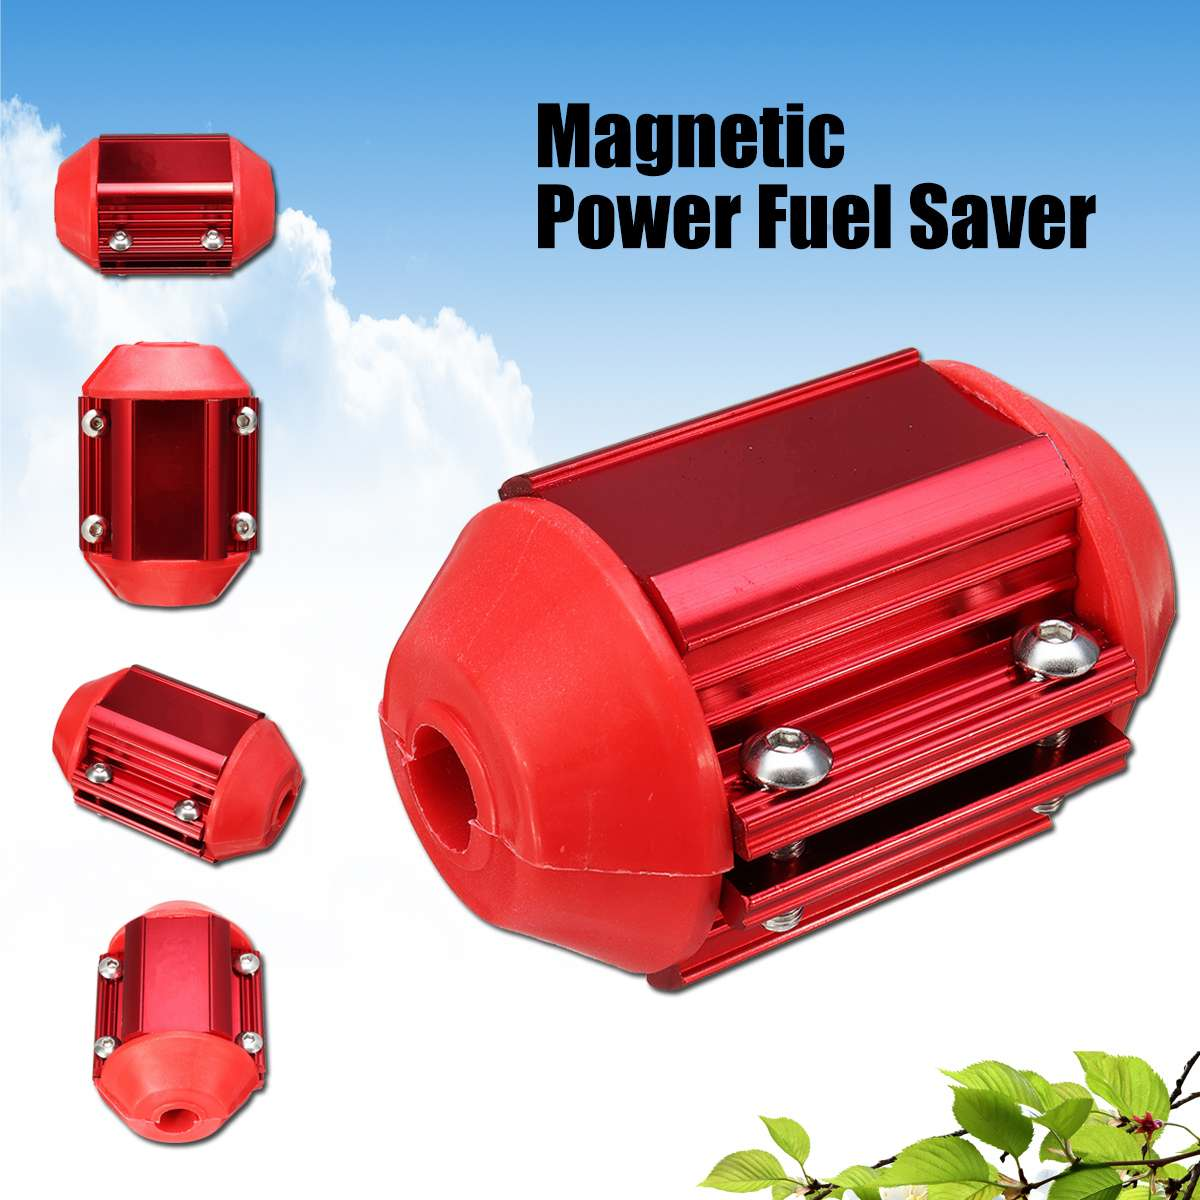 Universal Magnetic Fuel Saver Trucks Gas Oil Fuel Economizer Car Power Saver Vehicle Magnetic Fuel Saving With Tools